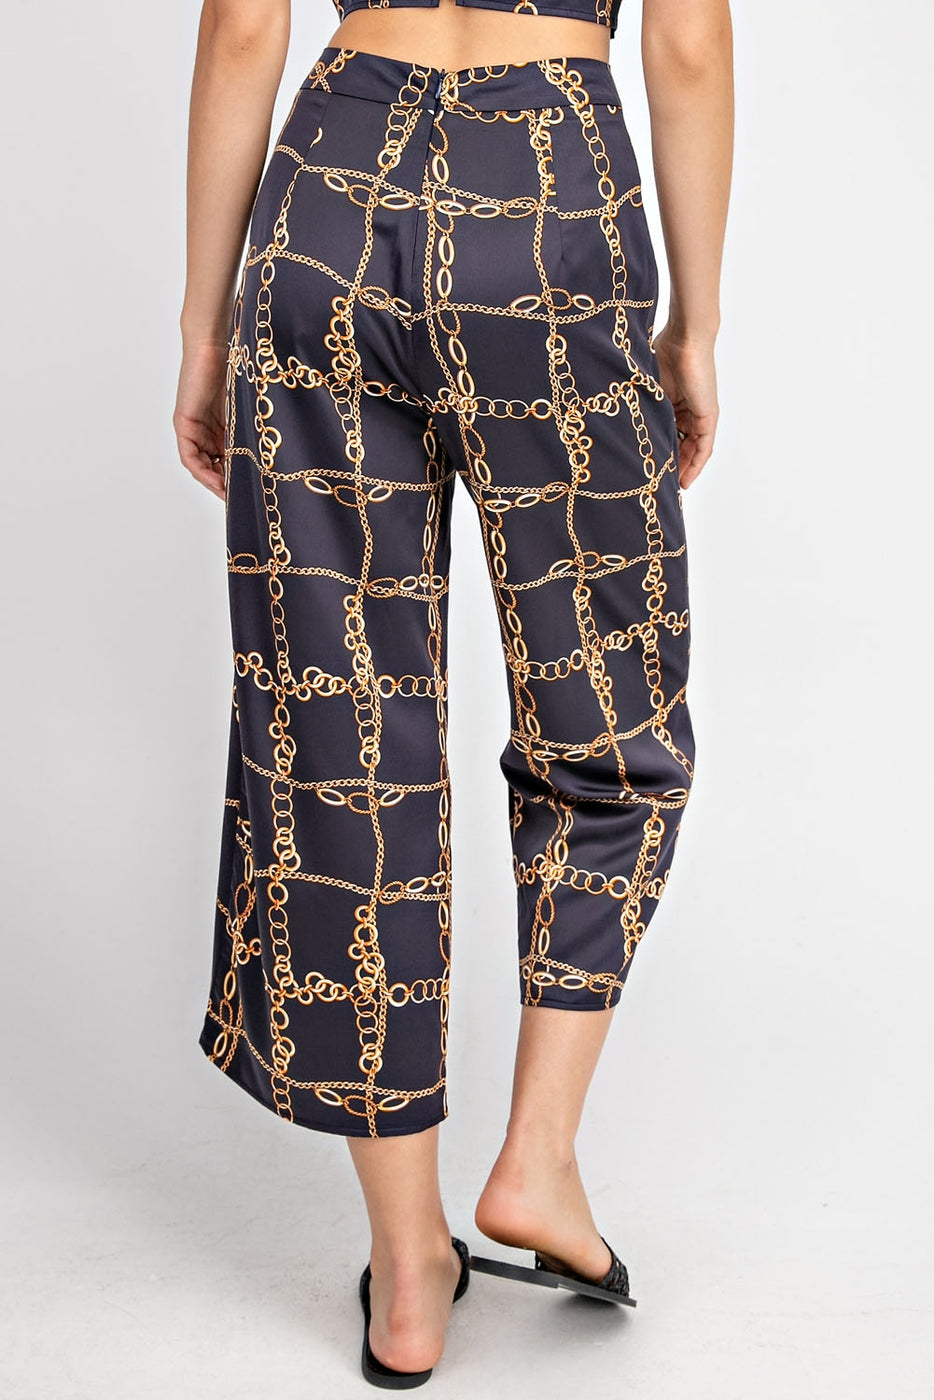 Printed Crop Pants In Navy Siin Bees